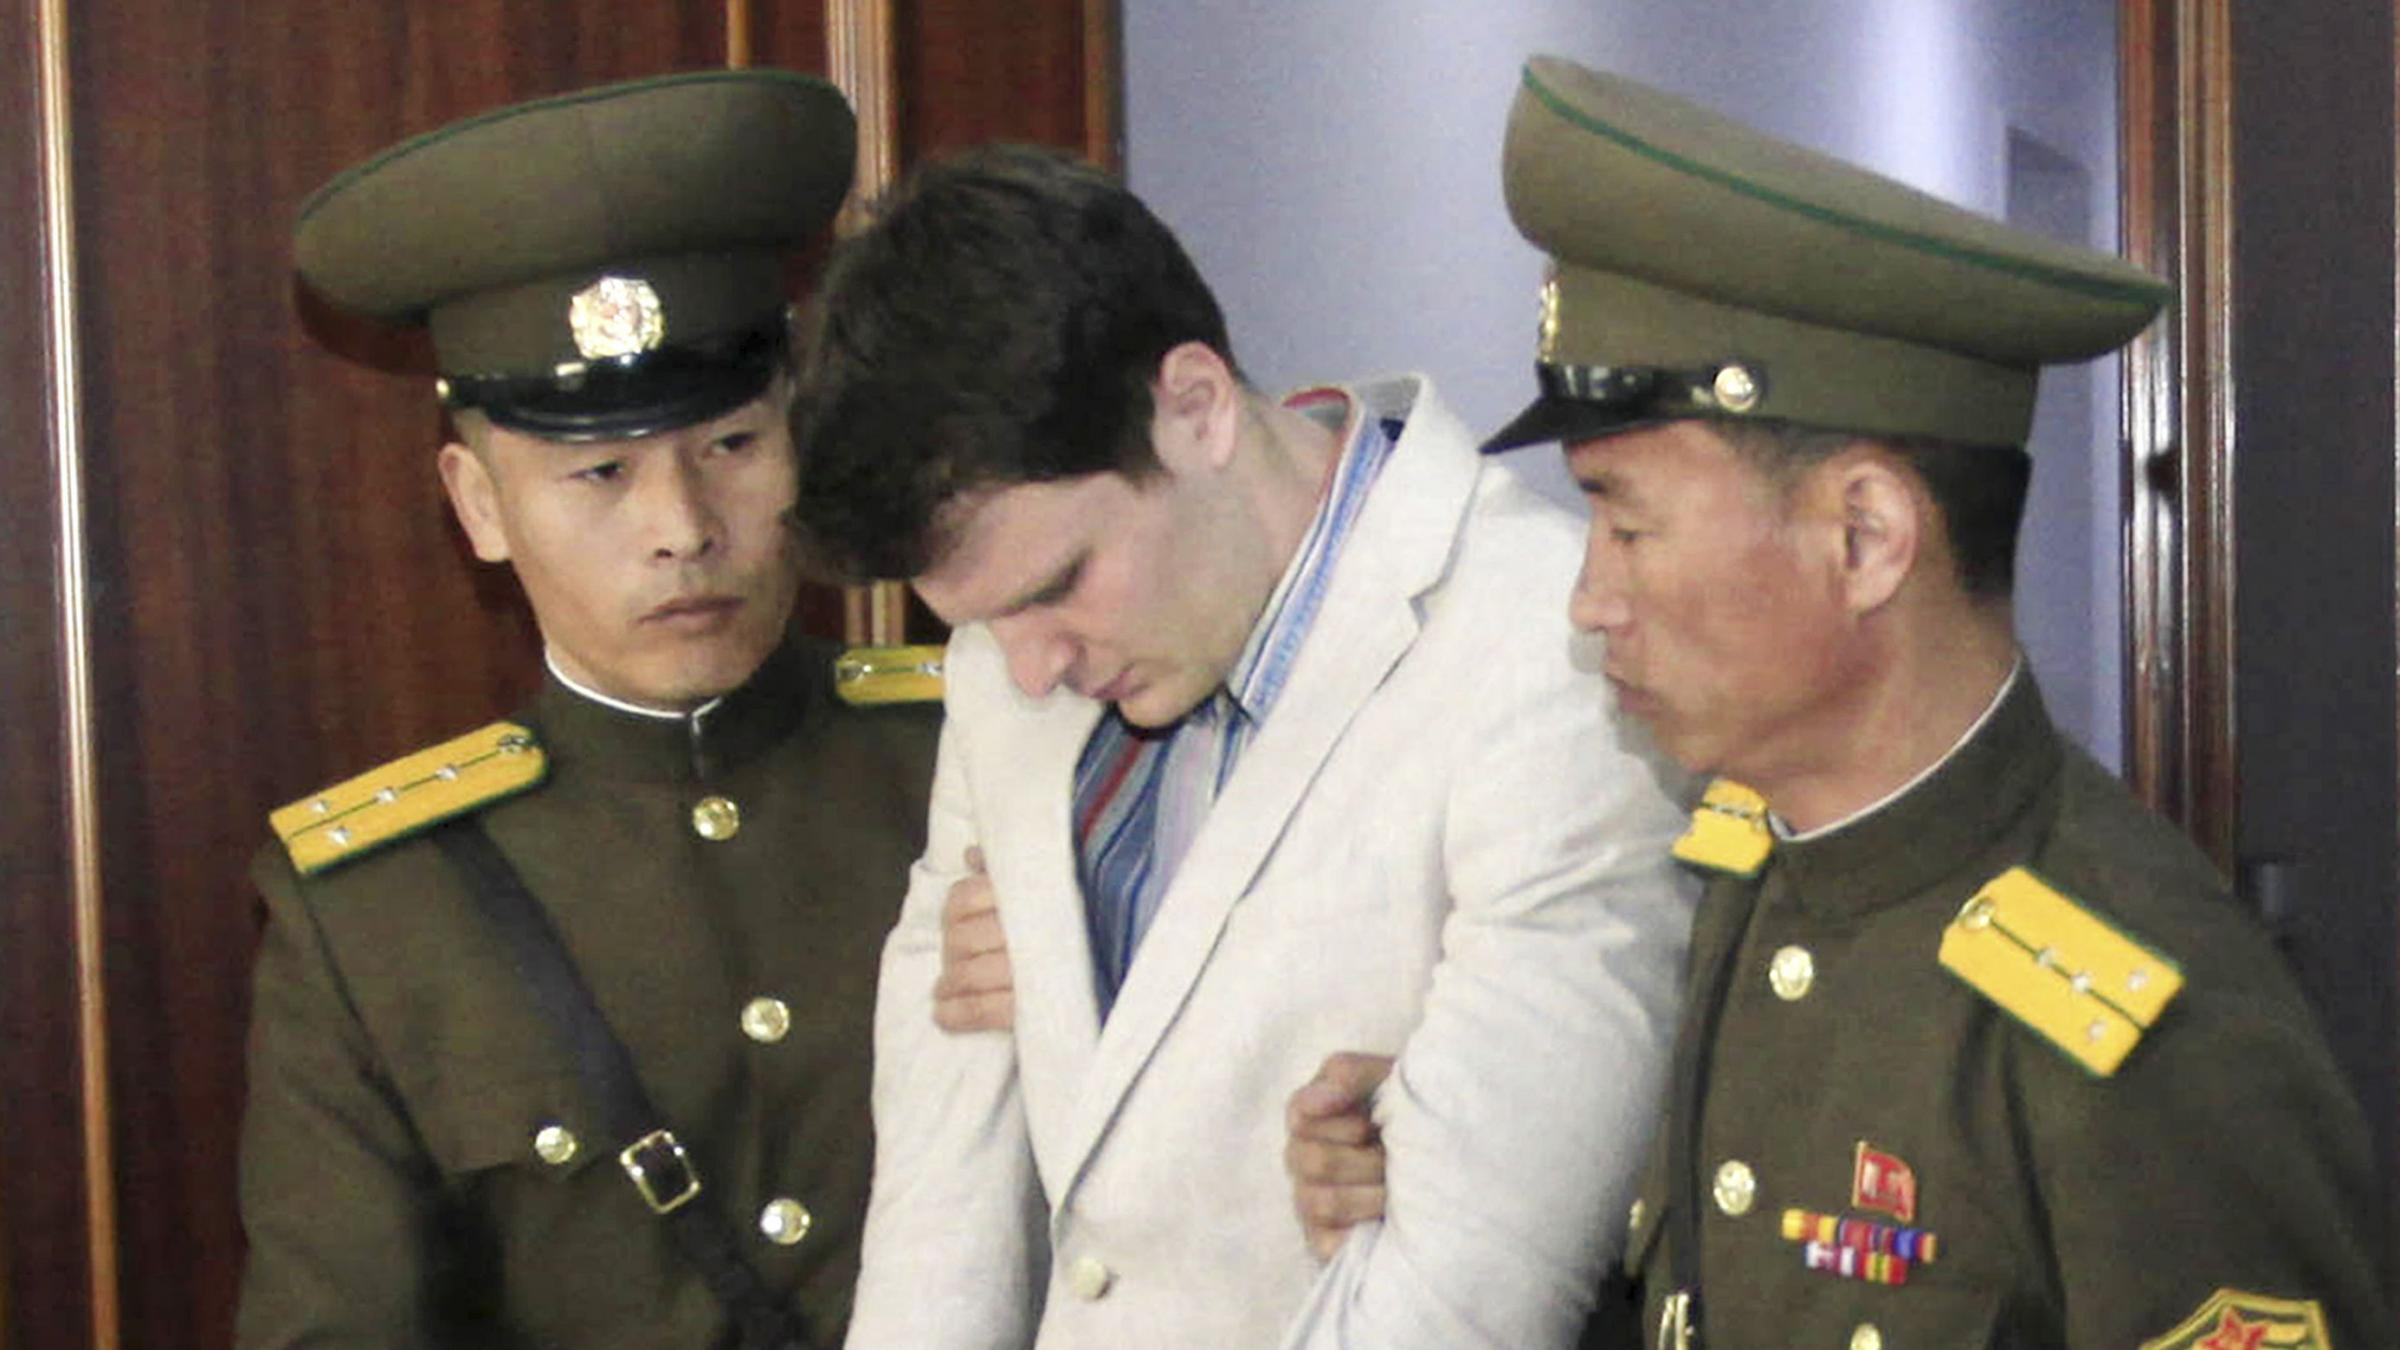 USA doctors dispute North Korean coma story